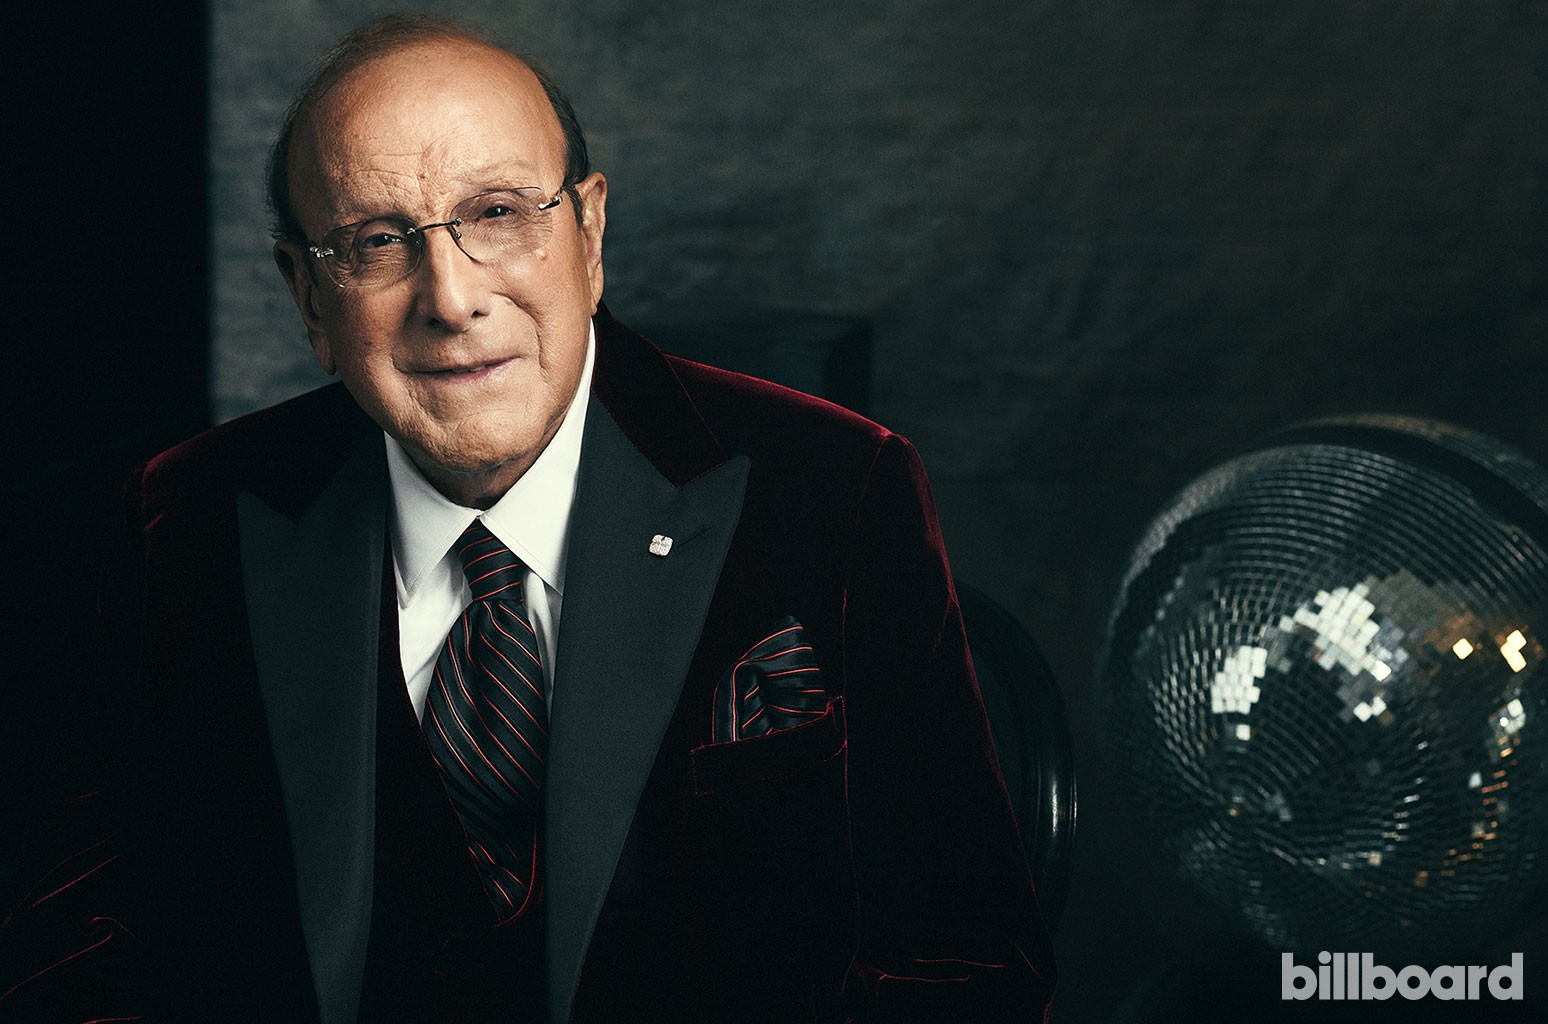 Clive Davis Sets Date for Second Virtual Grammy Event With Elton John & More